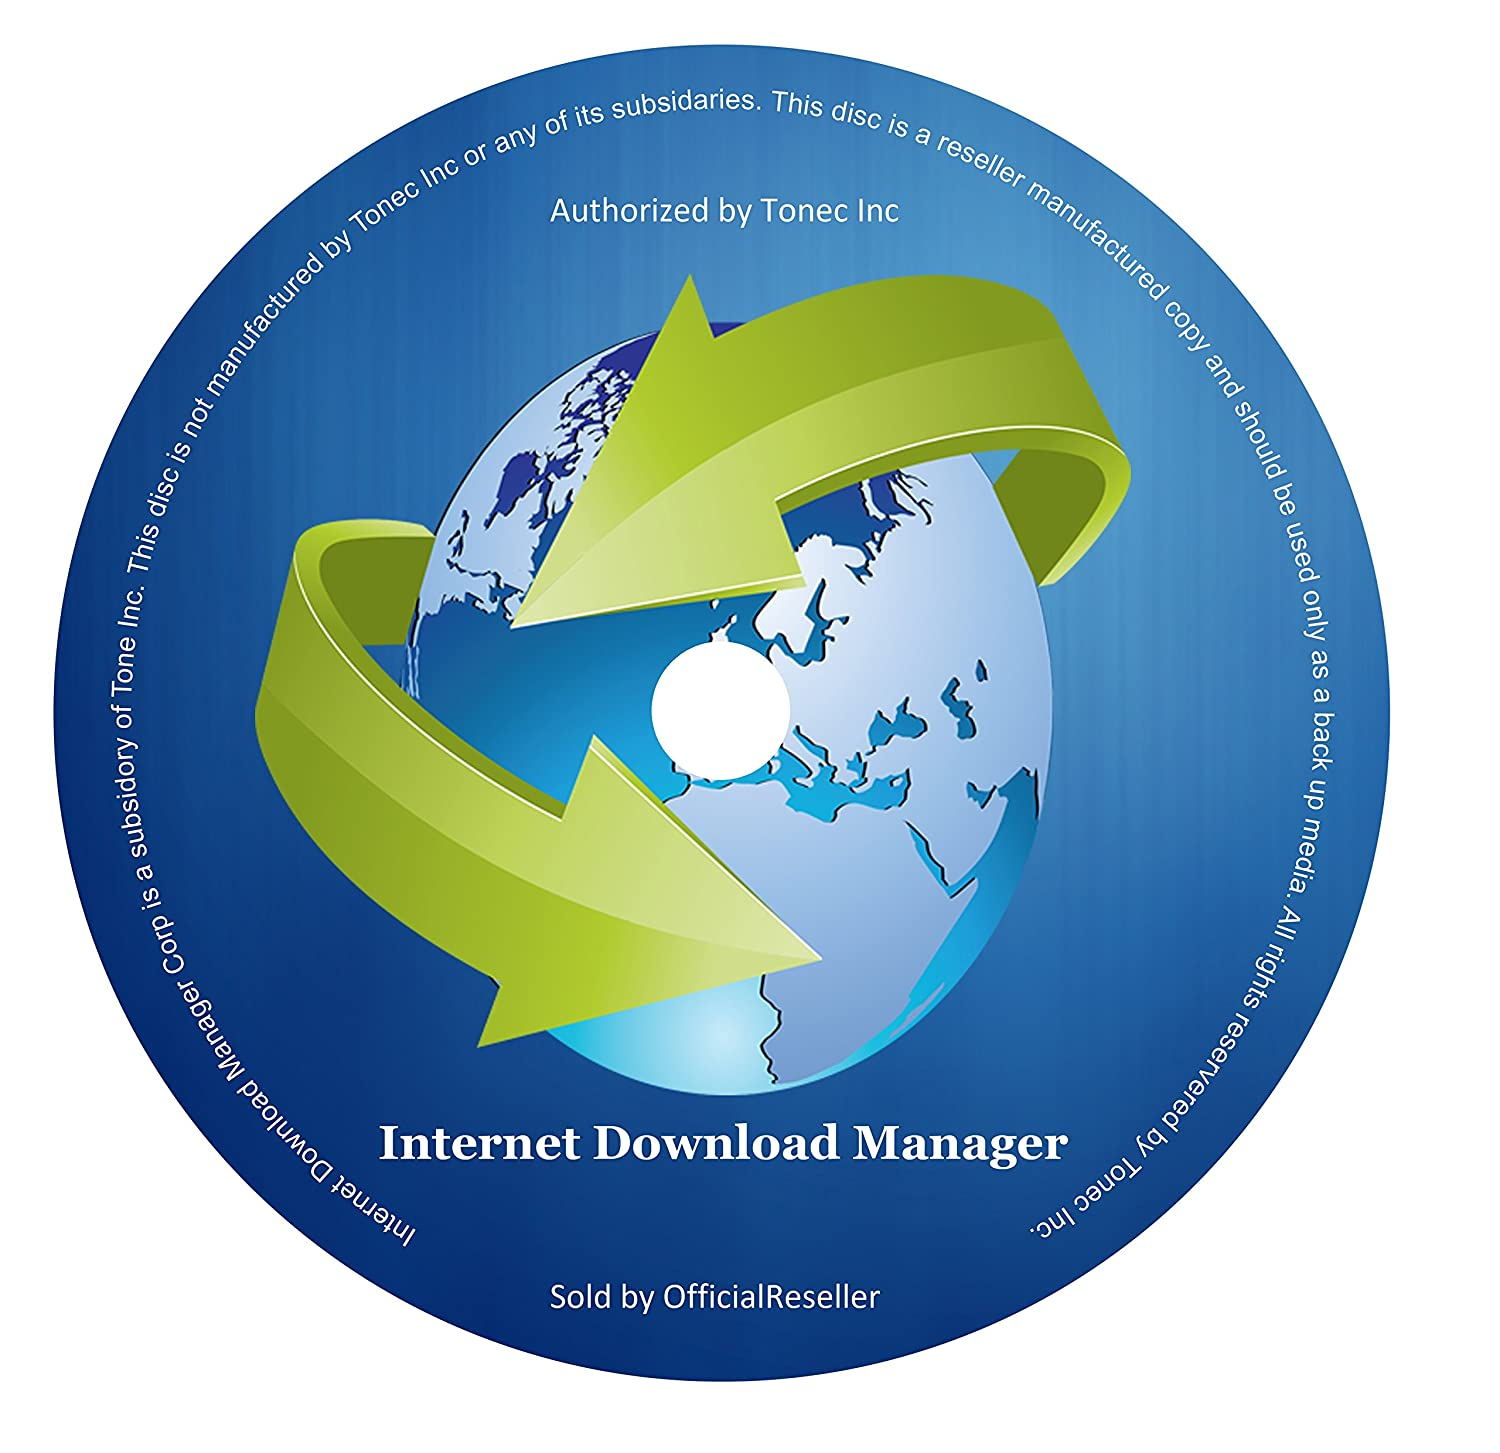 Internet download manager 1 pc life time license cd amazon internet download manager 1 pc life time license cd amazon software stopboris Gallery